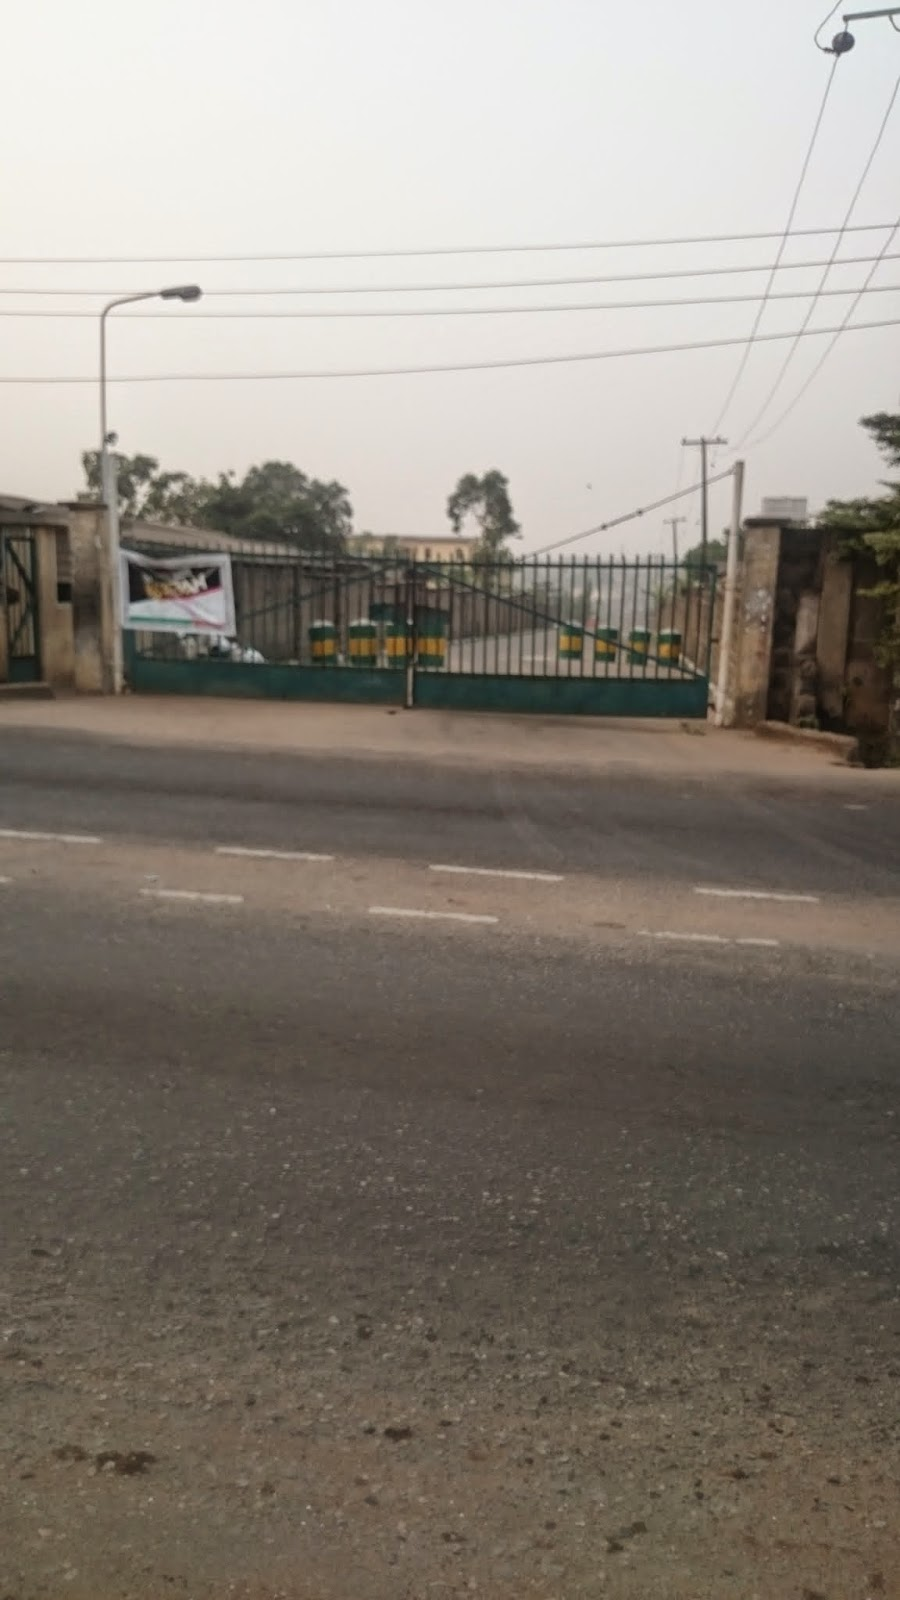 Gate of NYSC Orientation Camp, Iyana Ipaja, Lagos